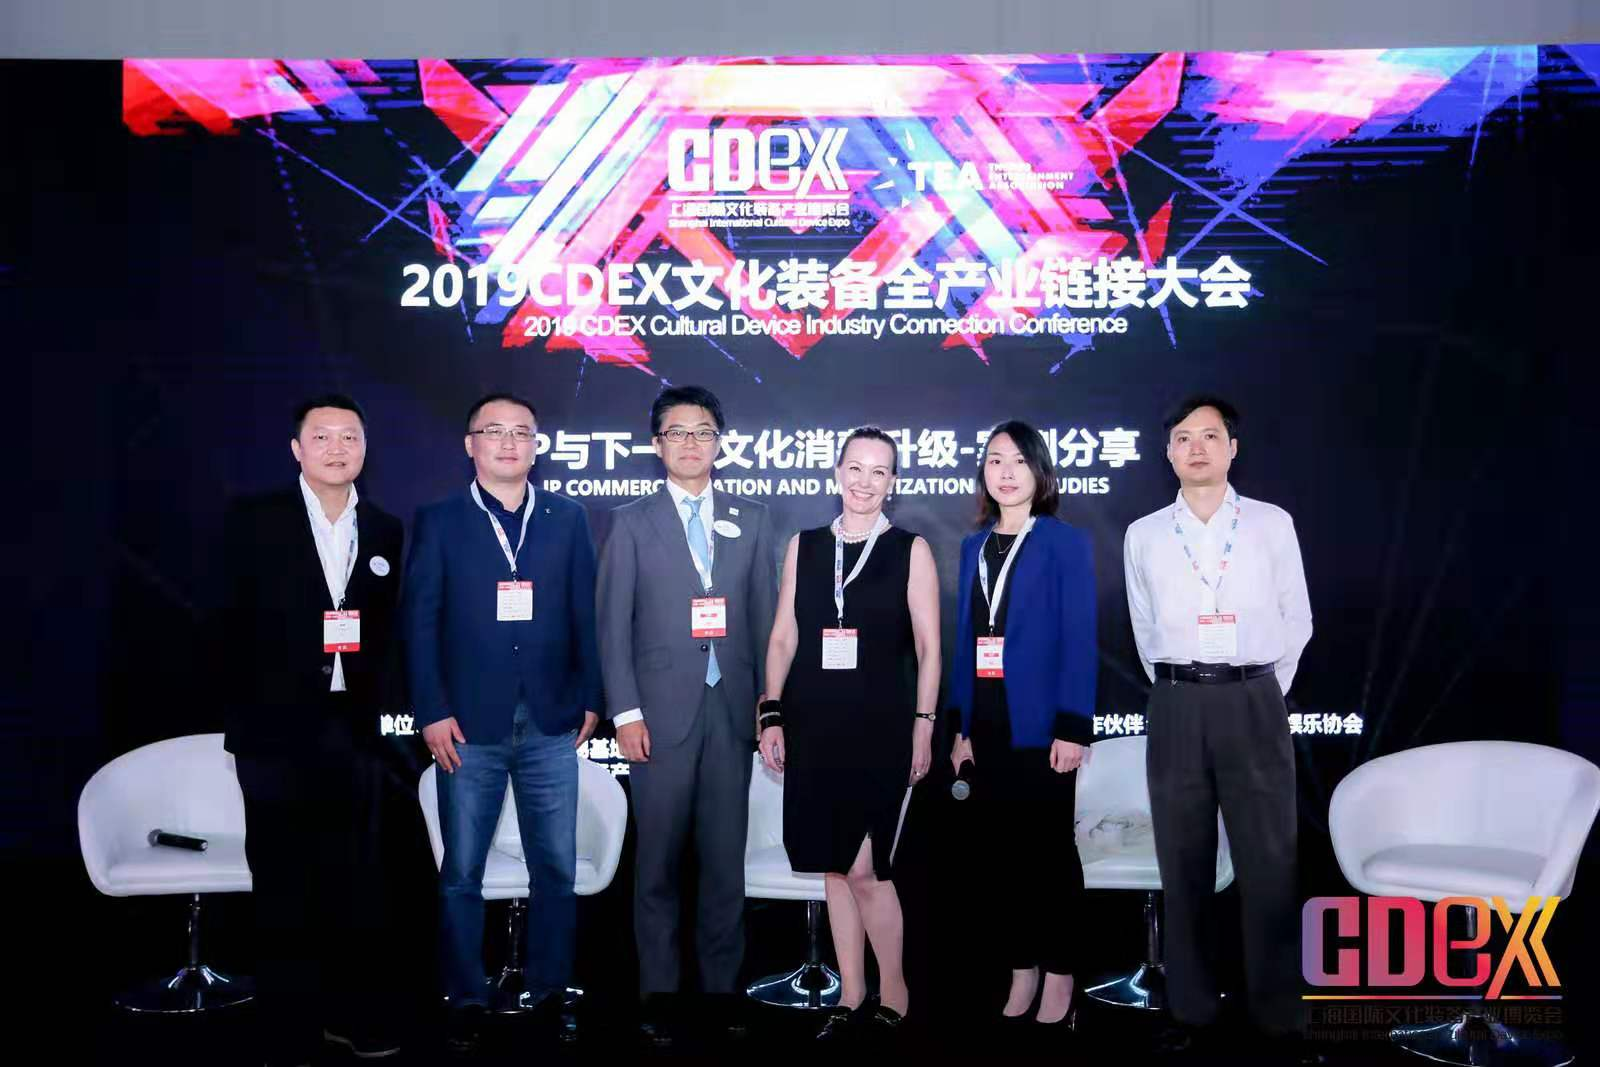 TEA Asia Pacific Division networks in China - Owen Zhao reports